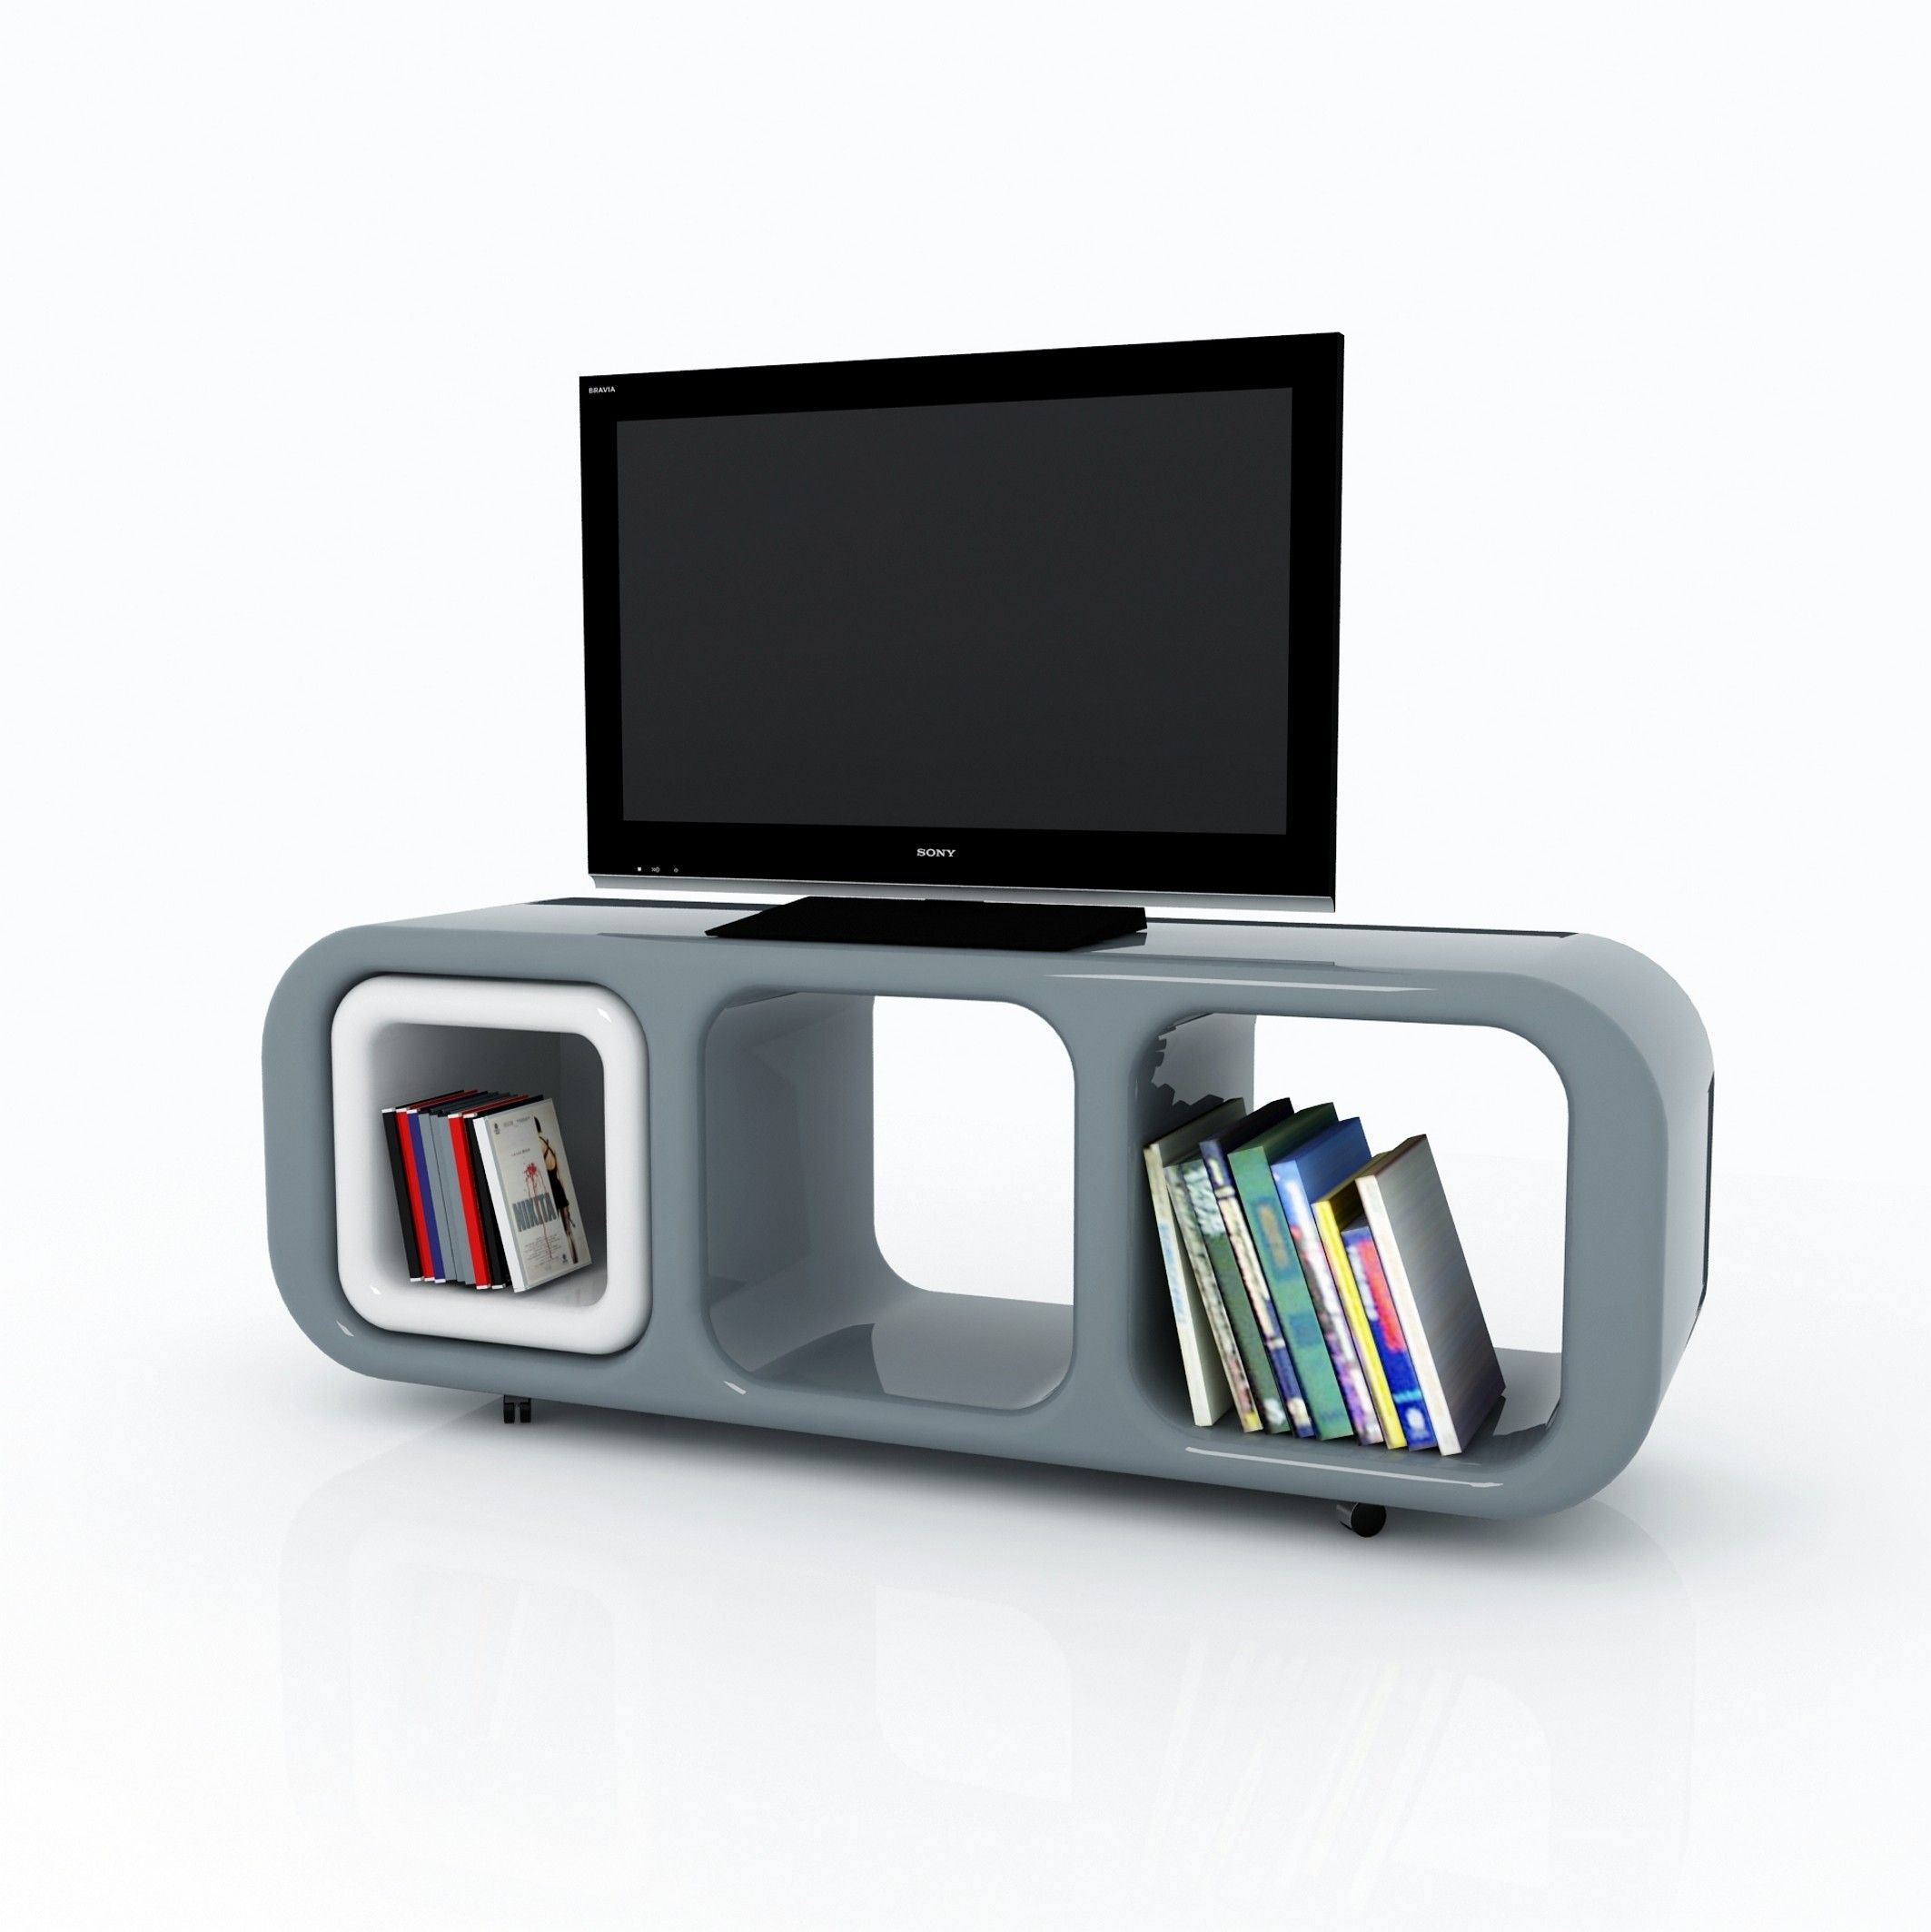 Mobile porta tv eracle design moderno su ruote in resina - Mobiletto con ruote porta tv ...